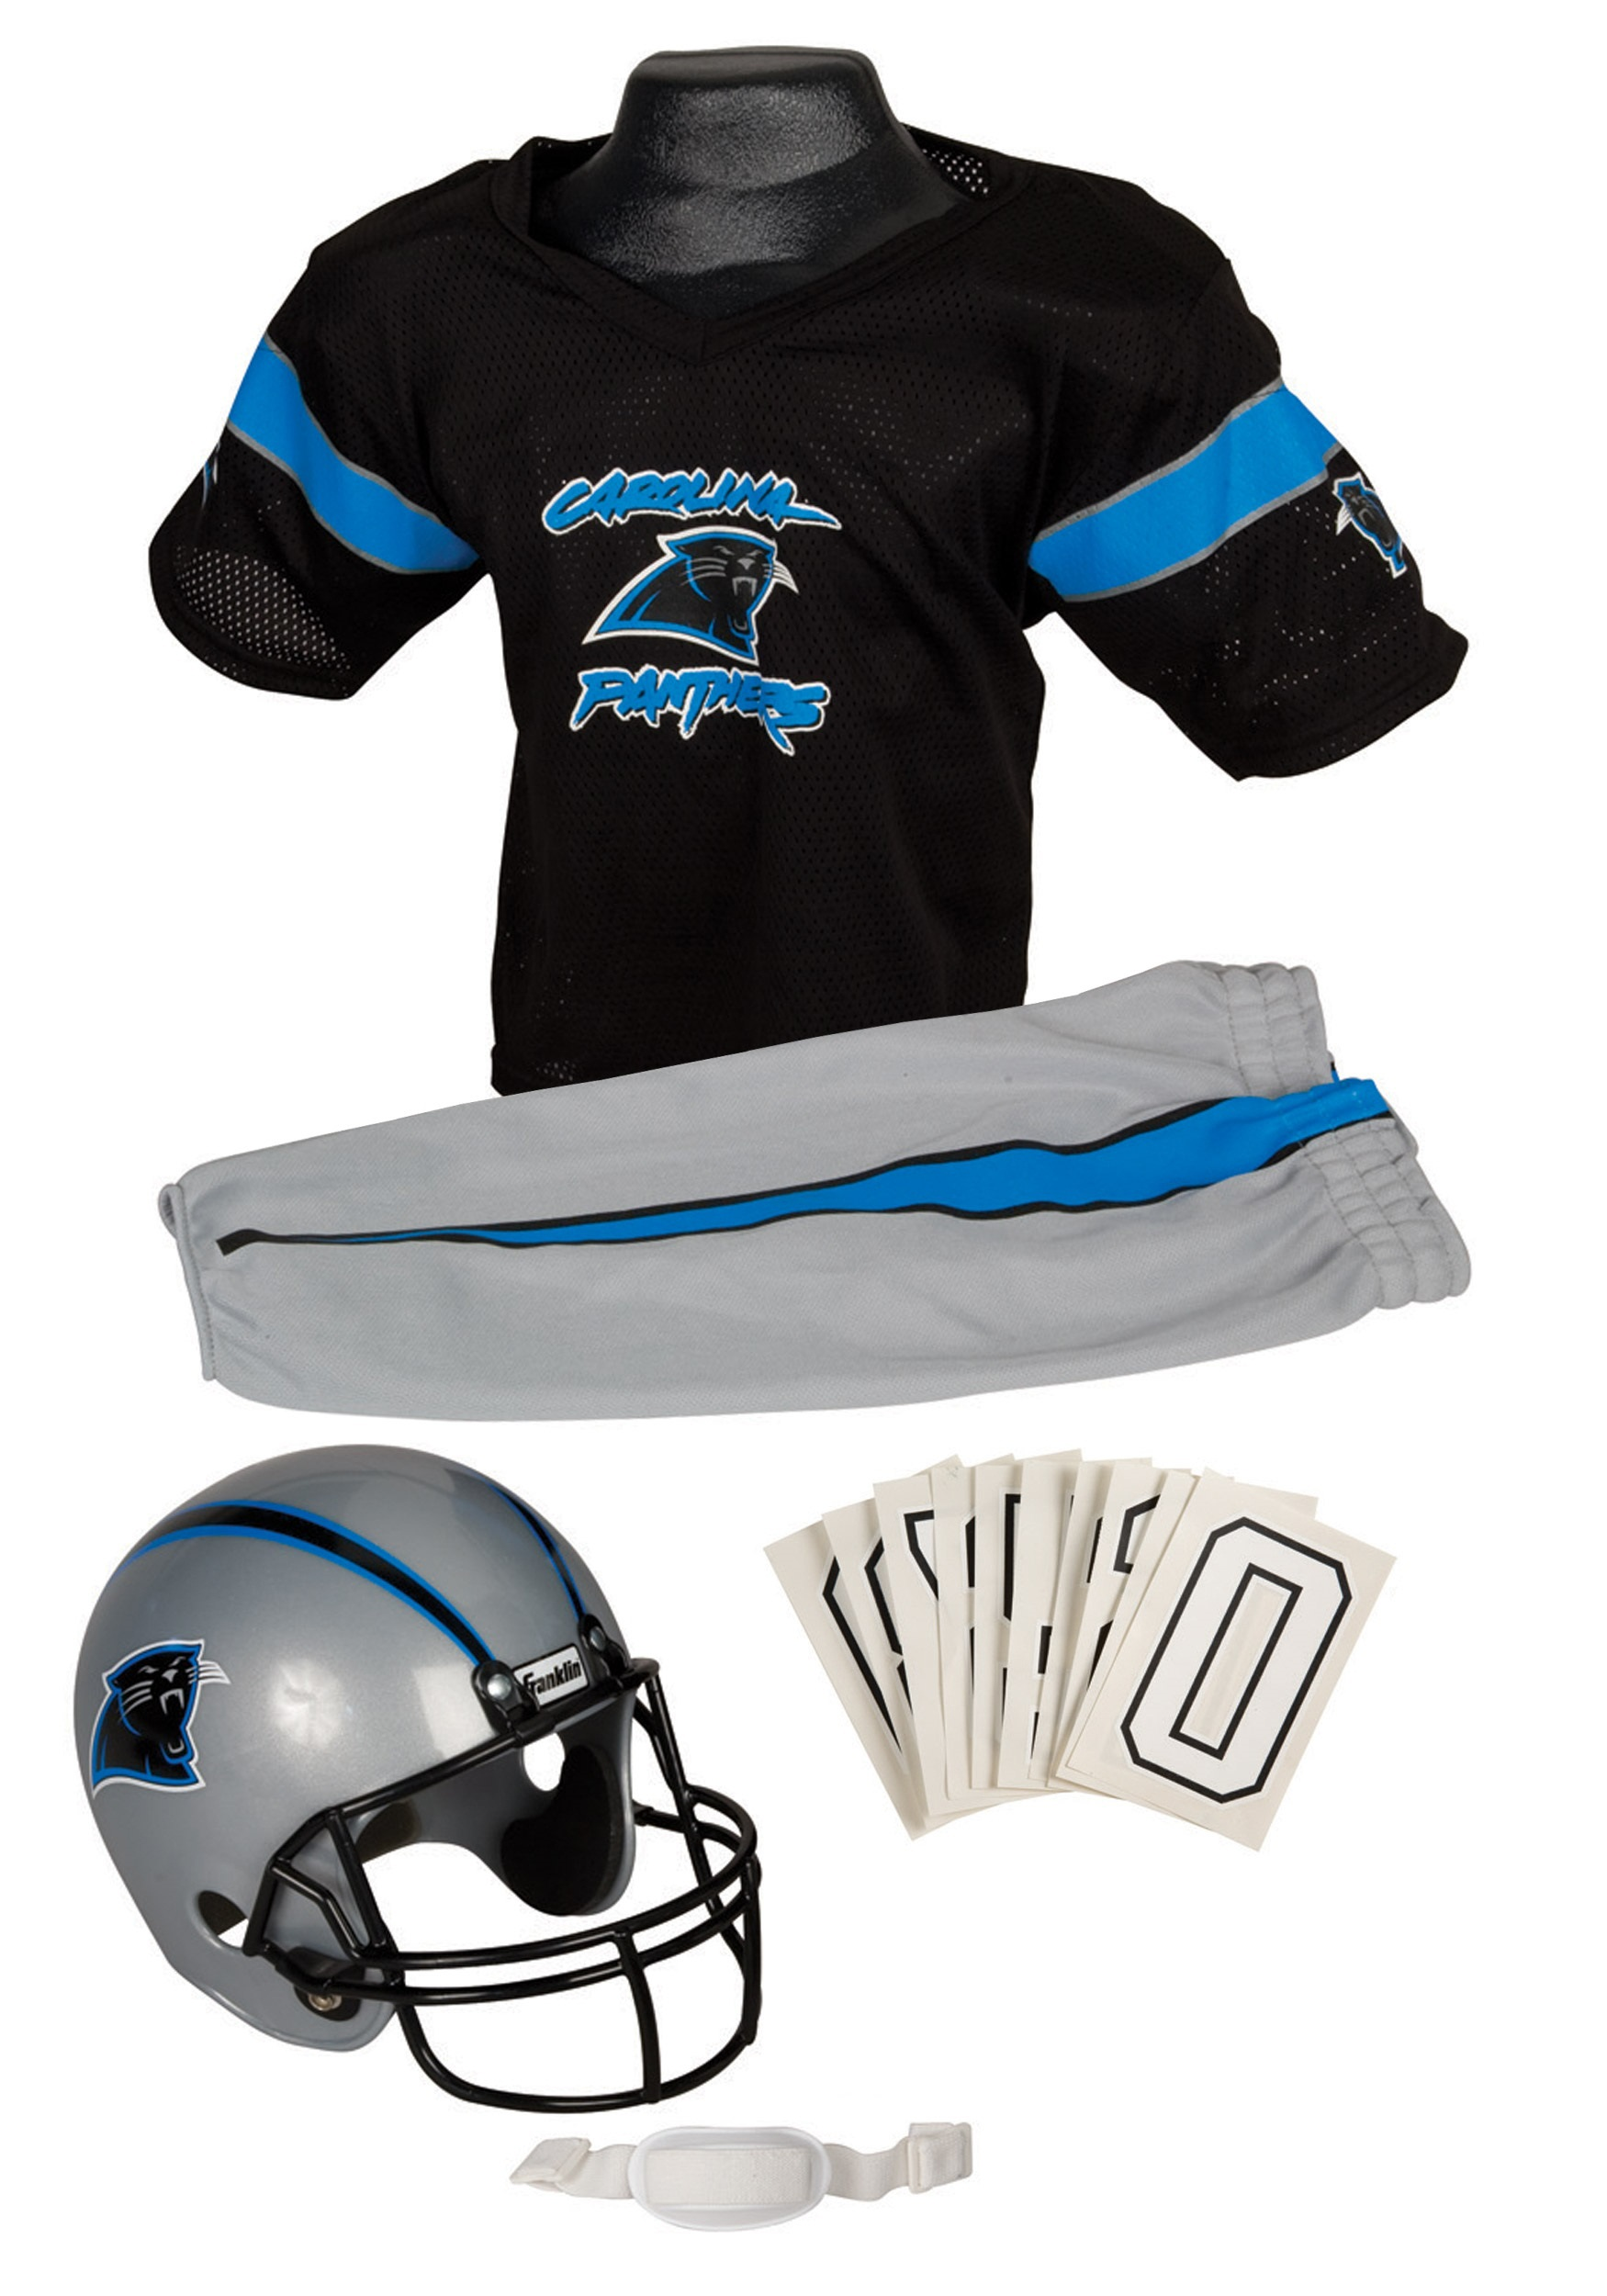 fbf891ab6b3 Football Player Costumes   Uniforms for Kids and Adults